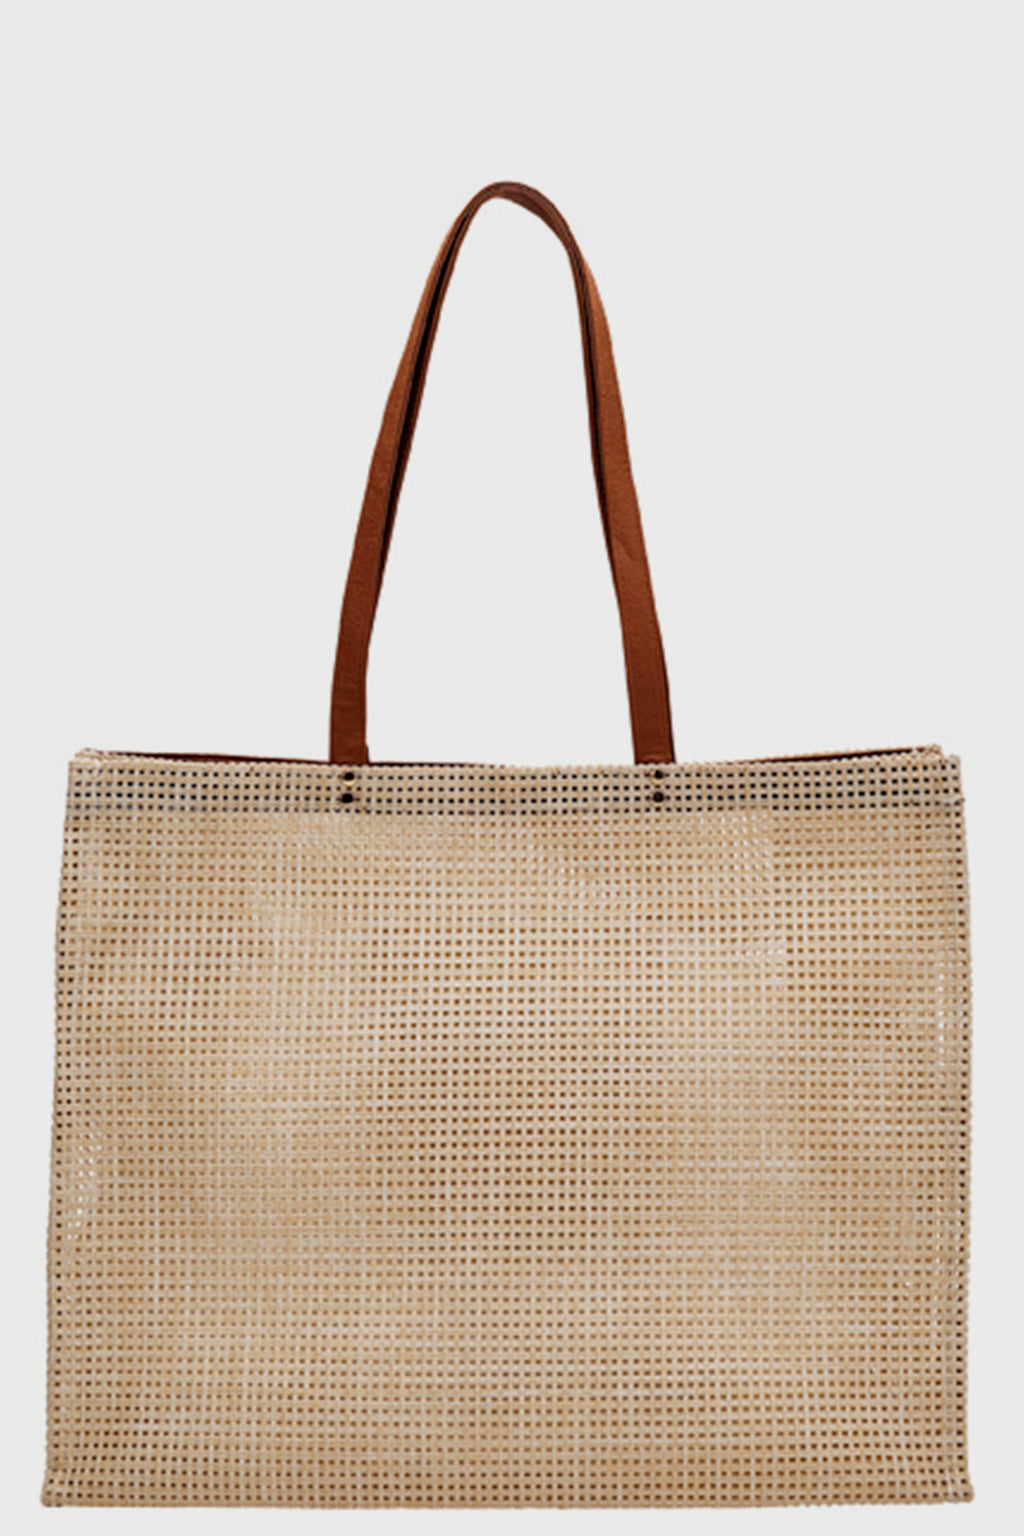 BaySky woven poly mesh tote with pleather handle (BSB1730OSNAT)-TOTE-BaySky